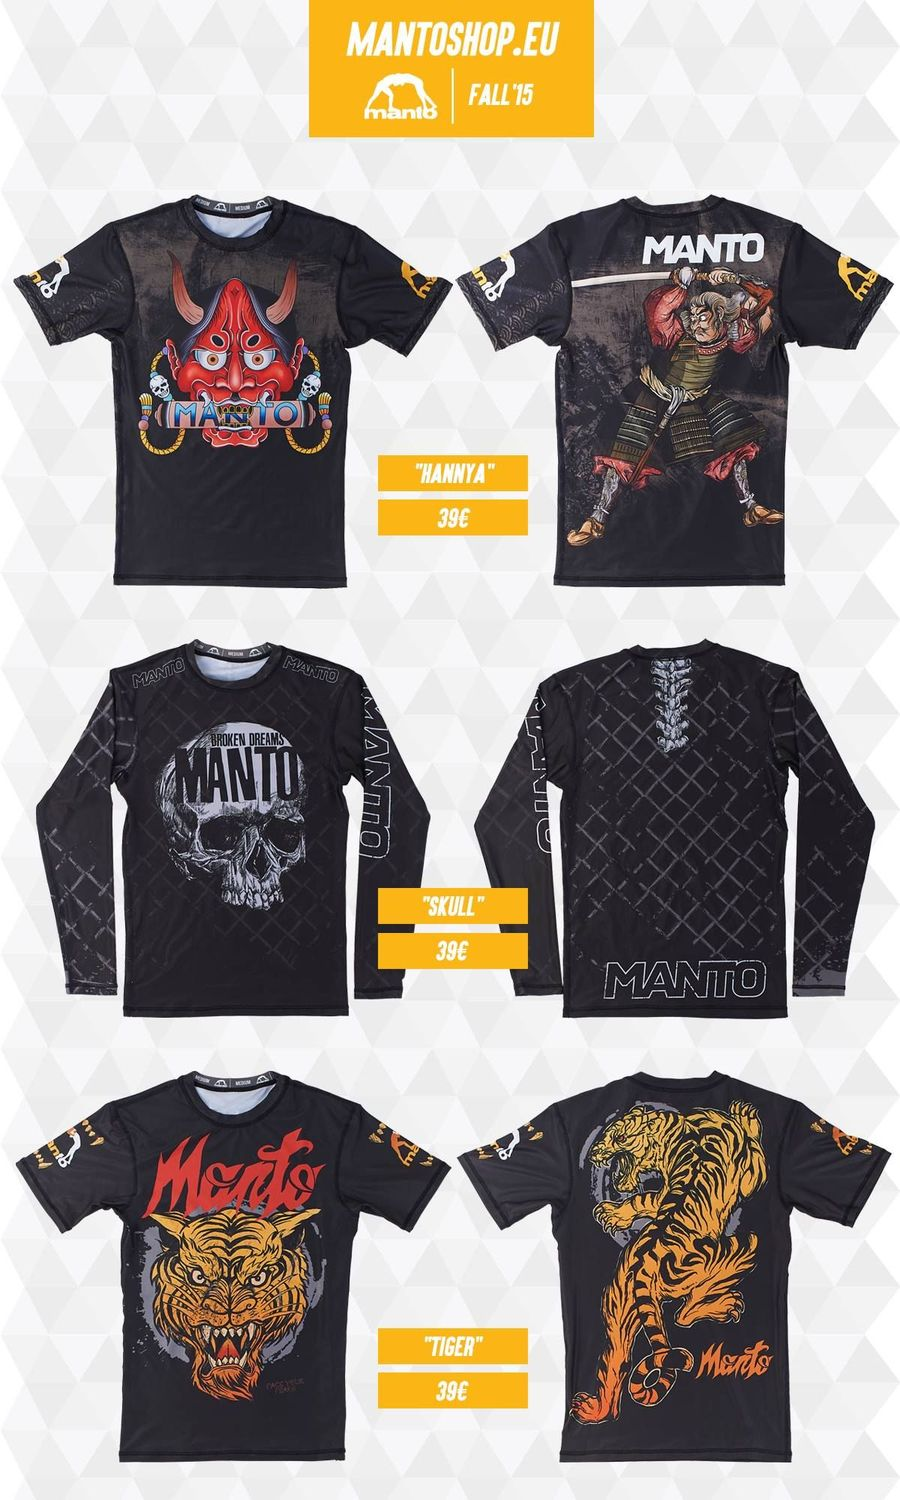 manto-fall-2015-rashguards